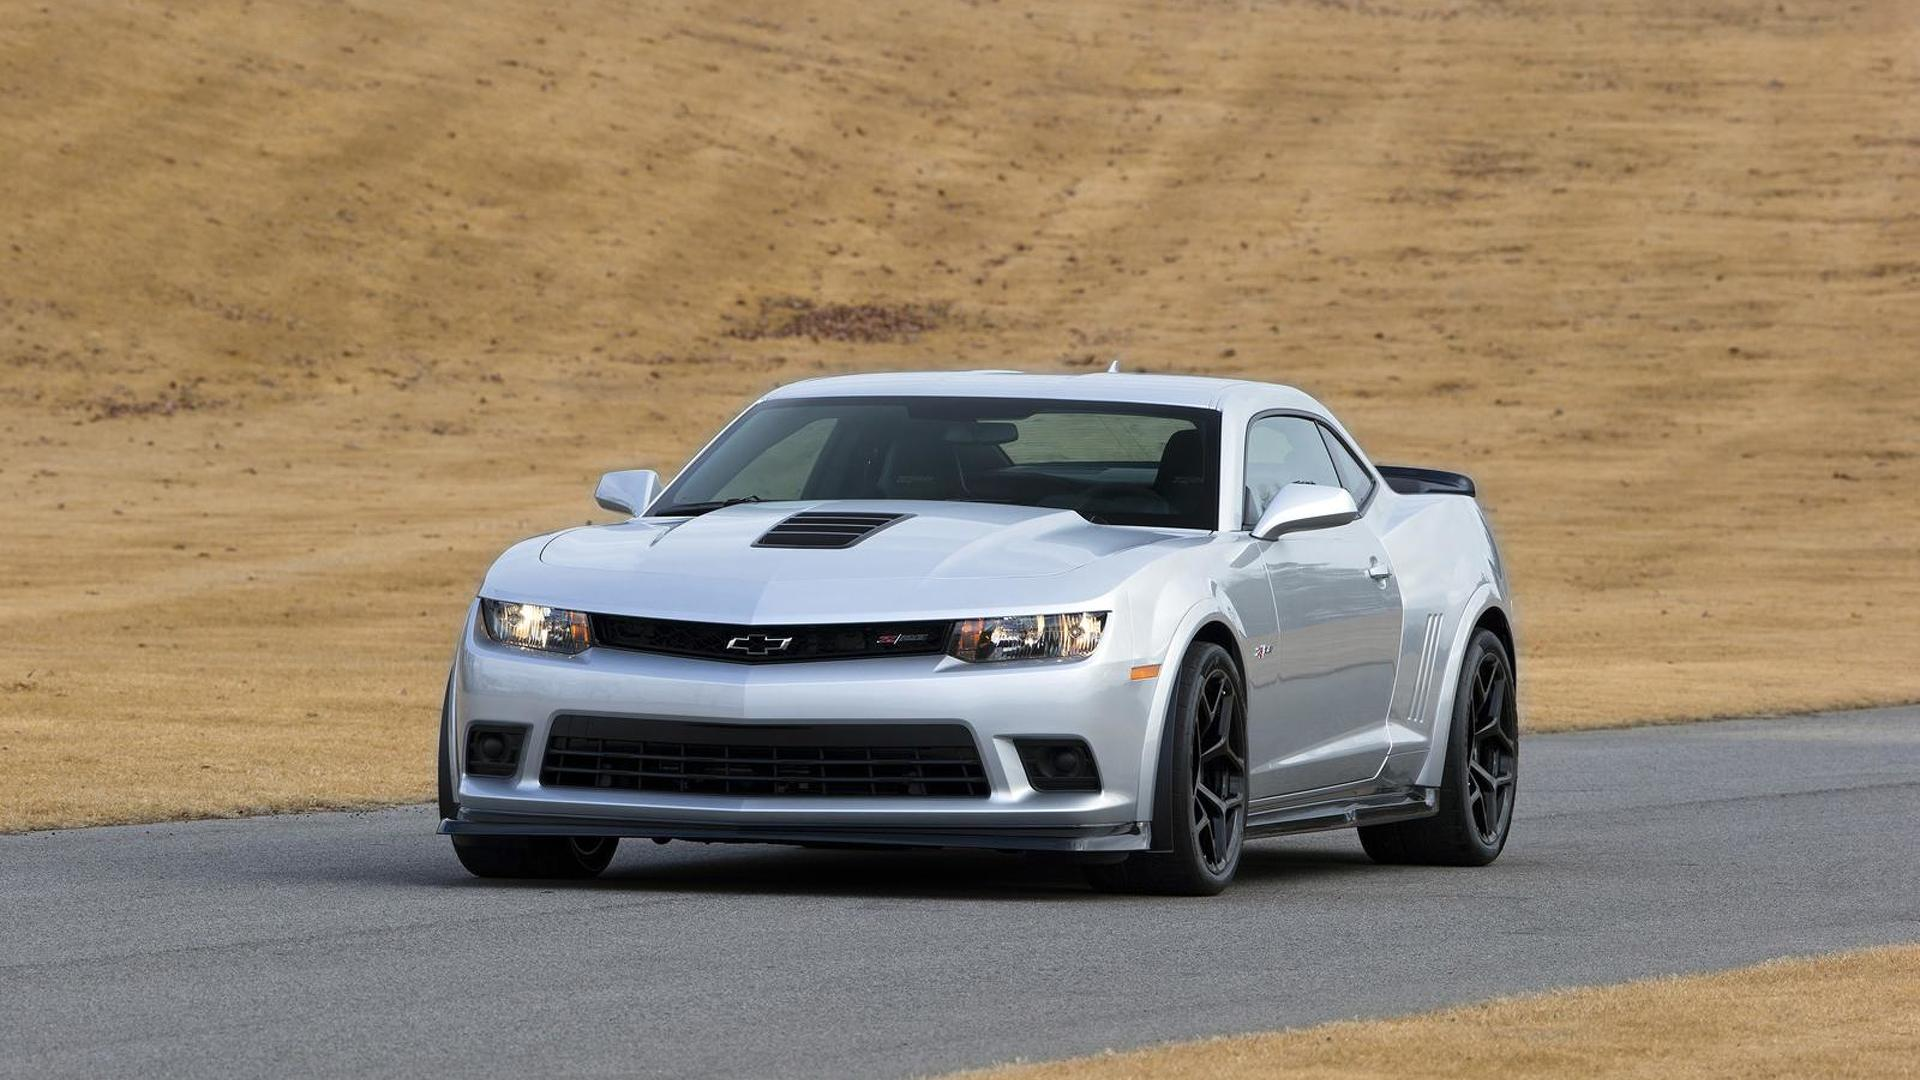 2016 Chevrolet Camaro to get 2.0-liter turbo engine - report